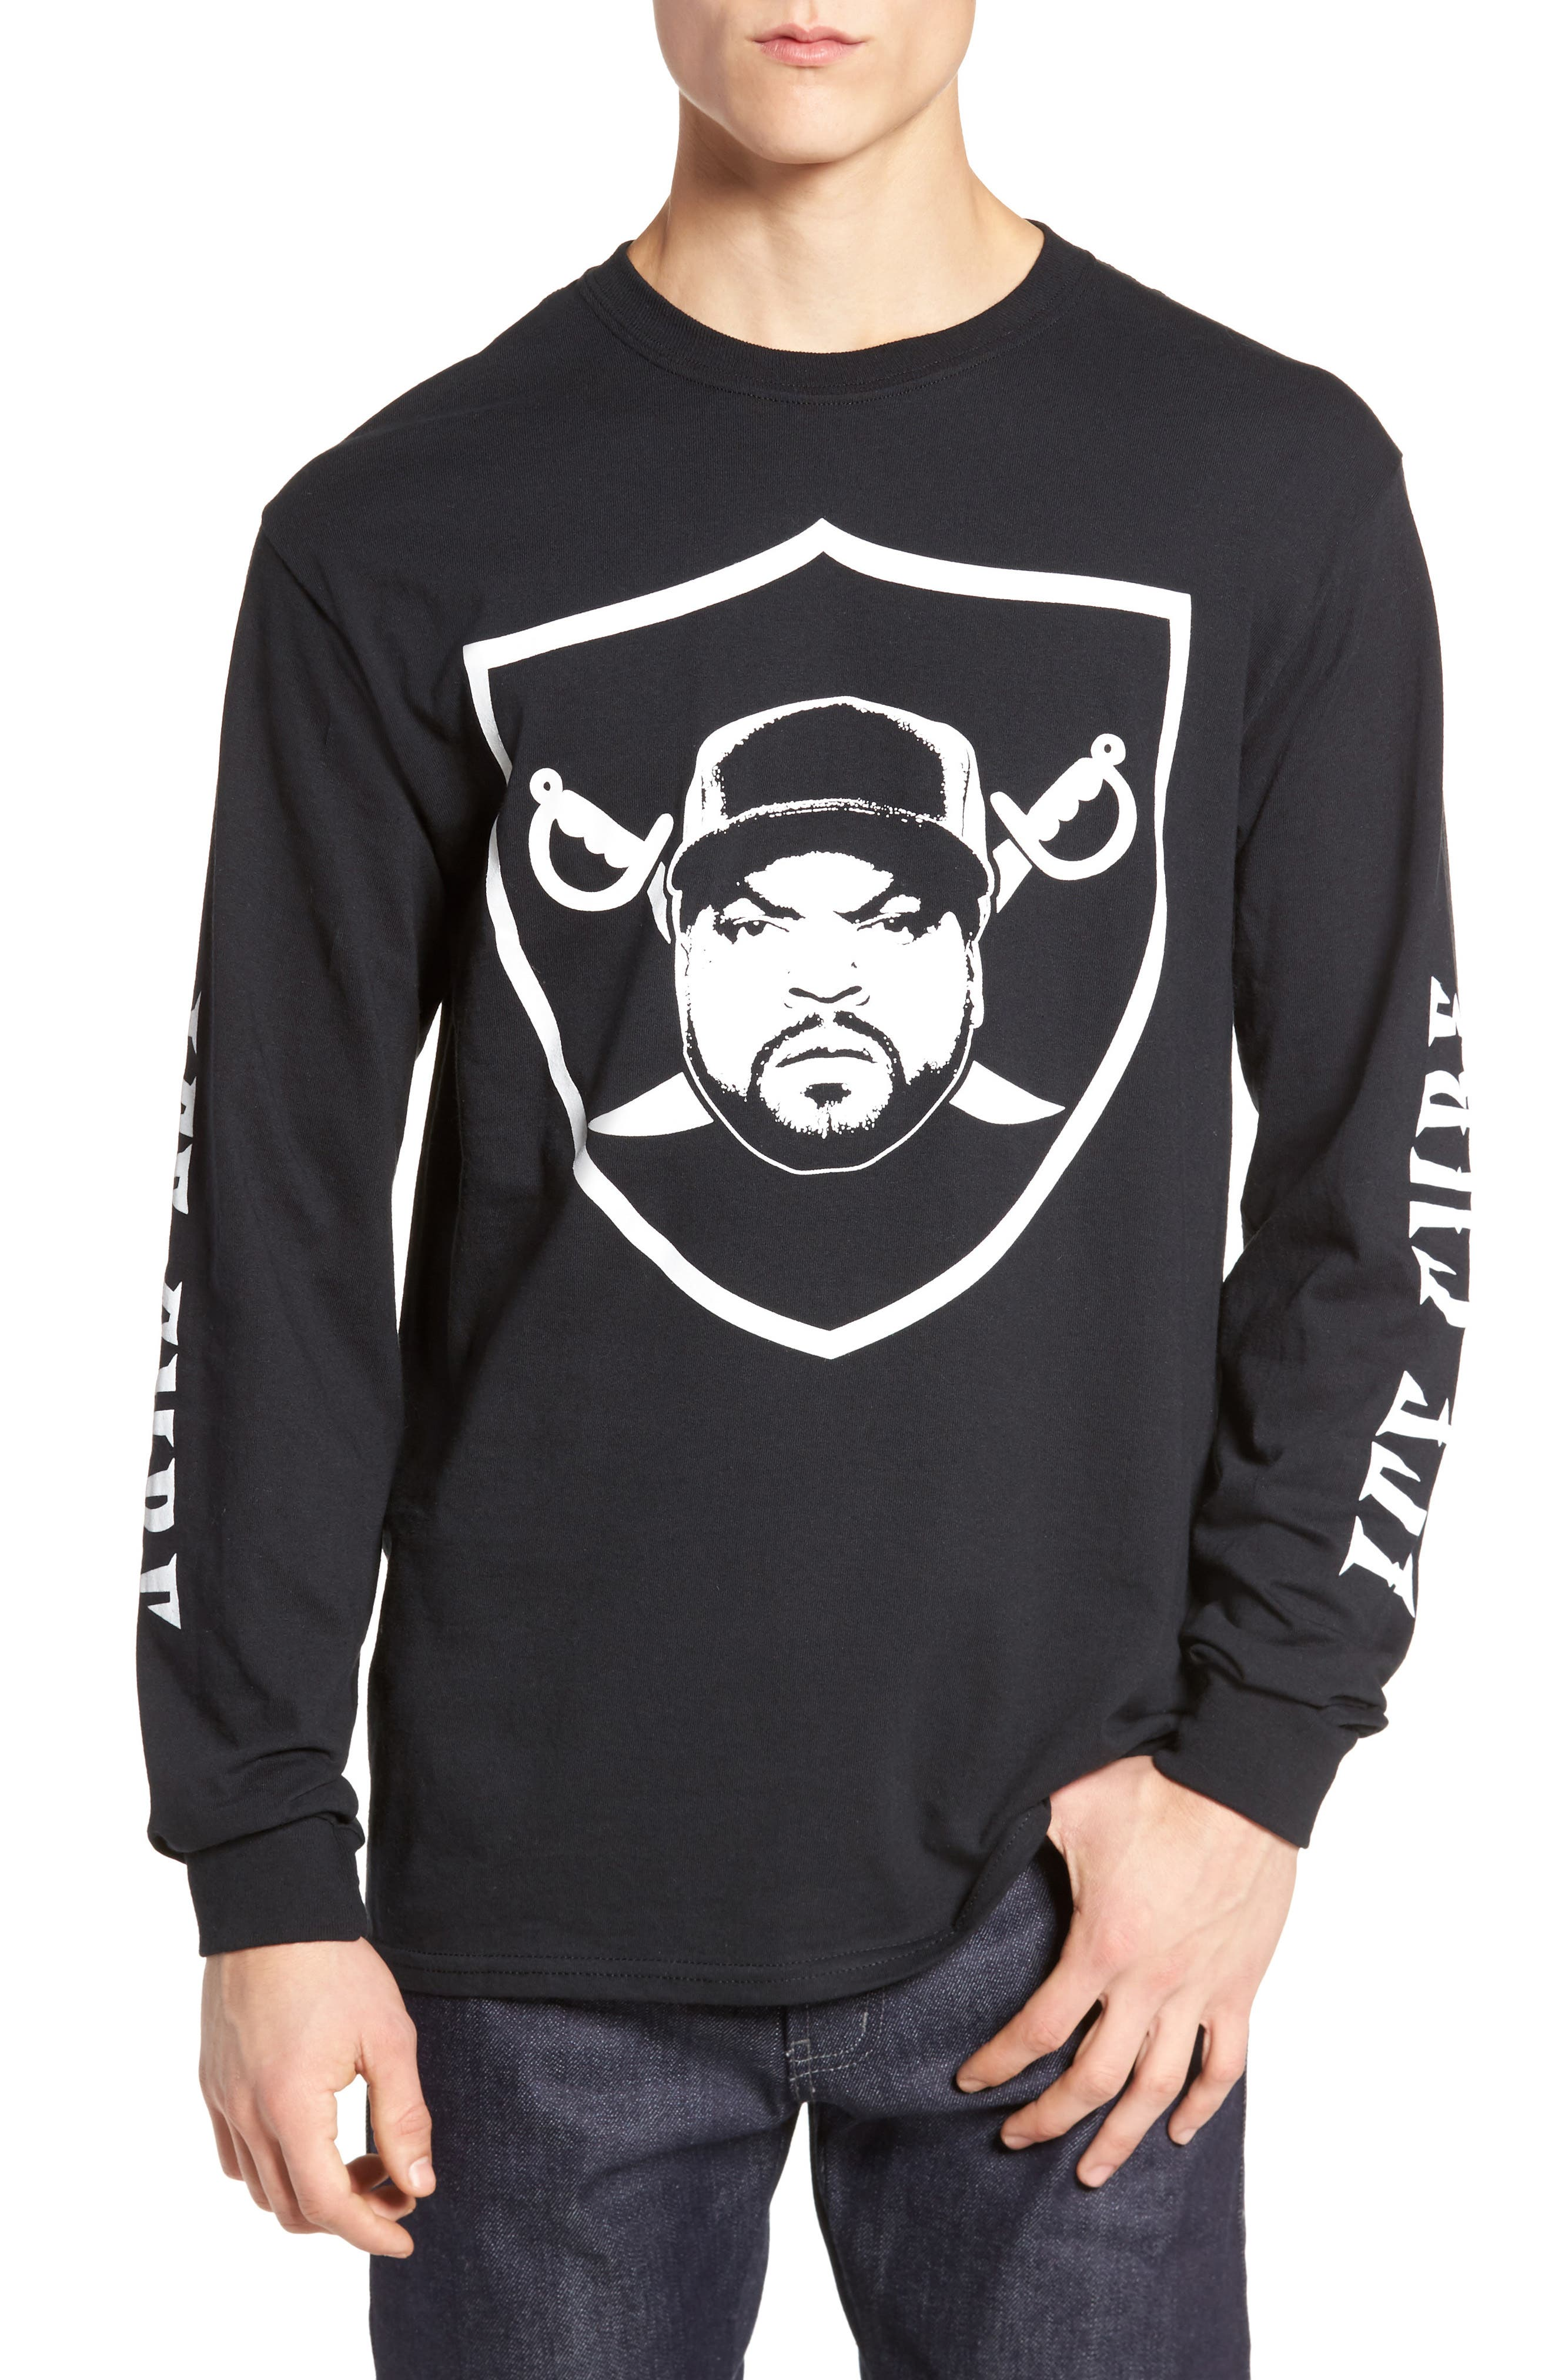 The Rail Ice Cube Raider Graphic T-Shirt